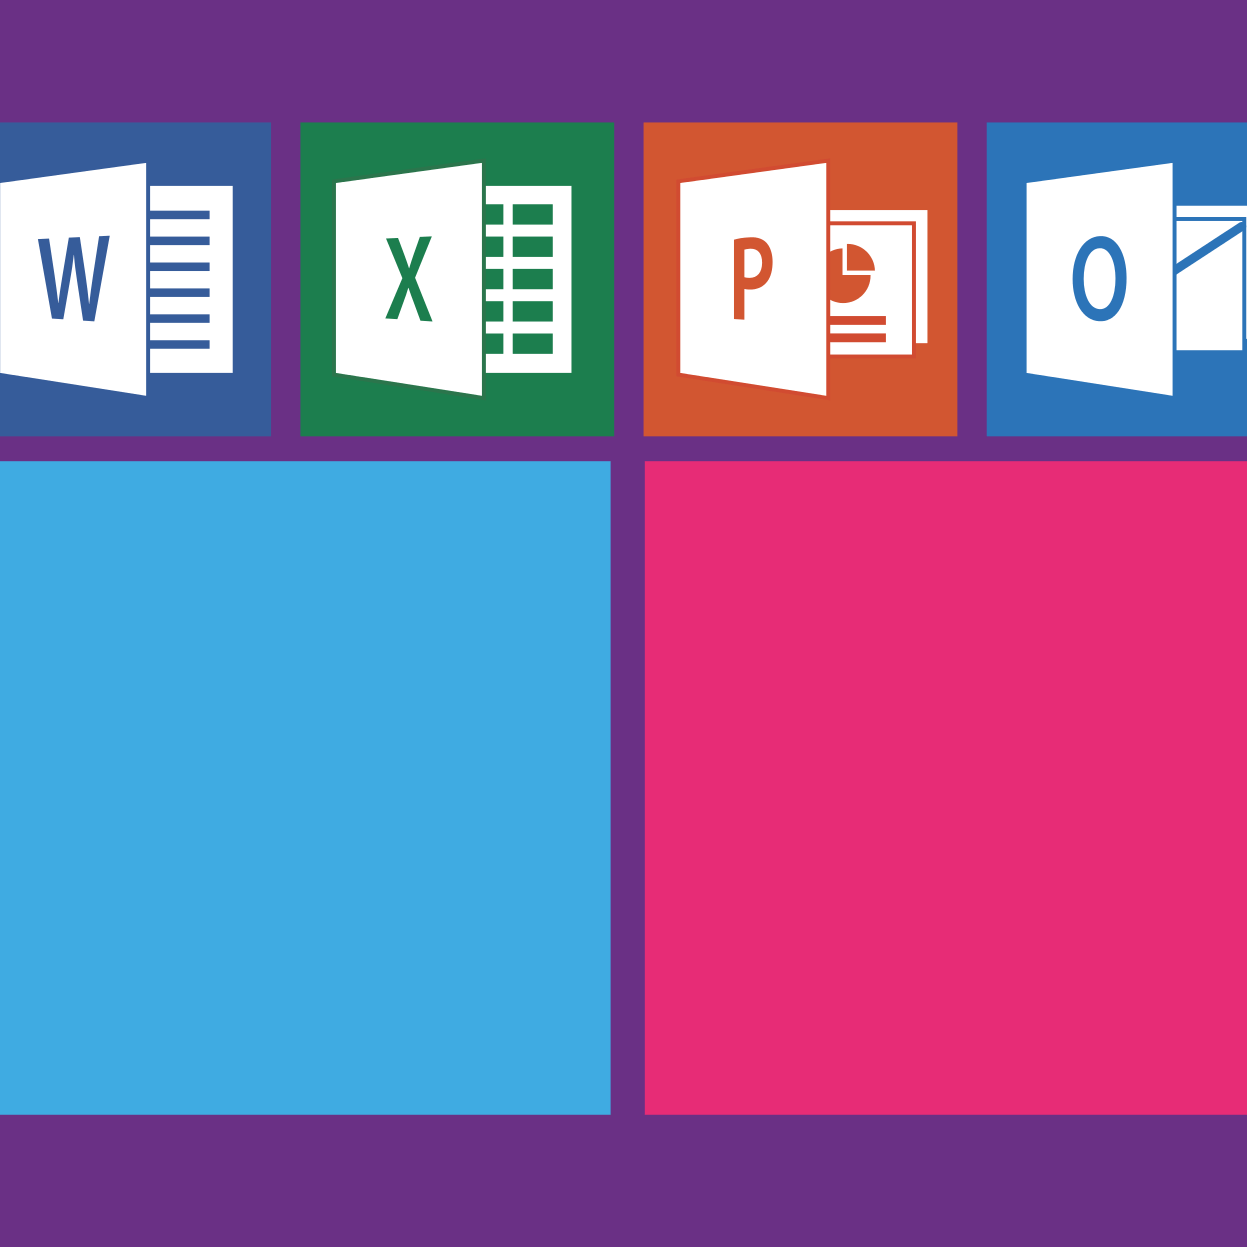 Find Word Autosave Location On Windows 10 Full Guide